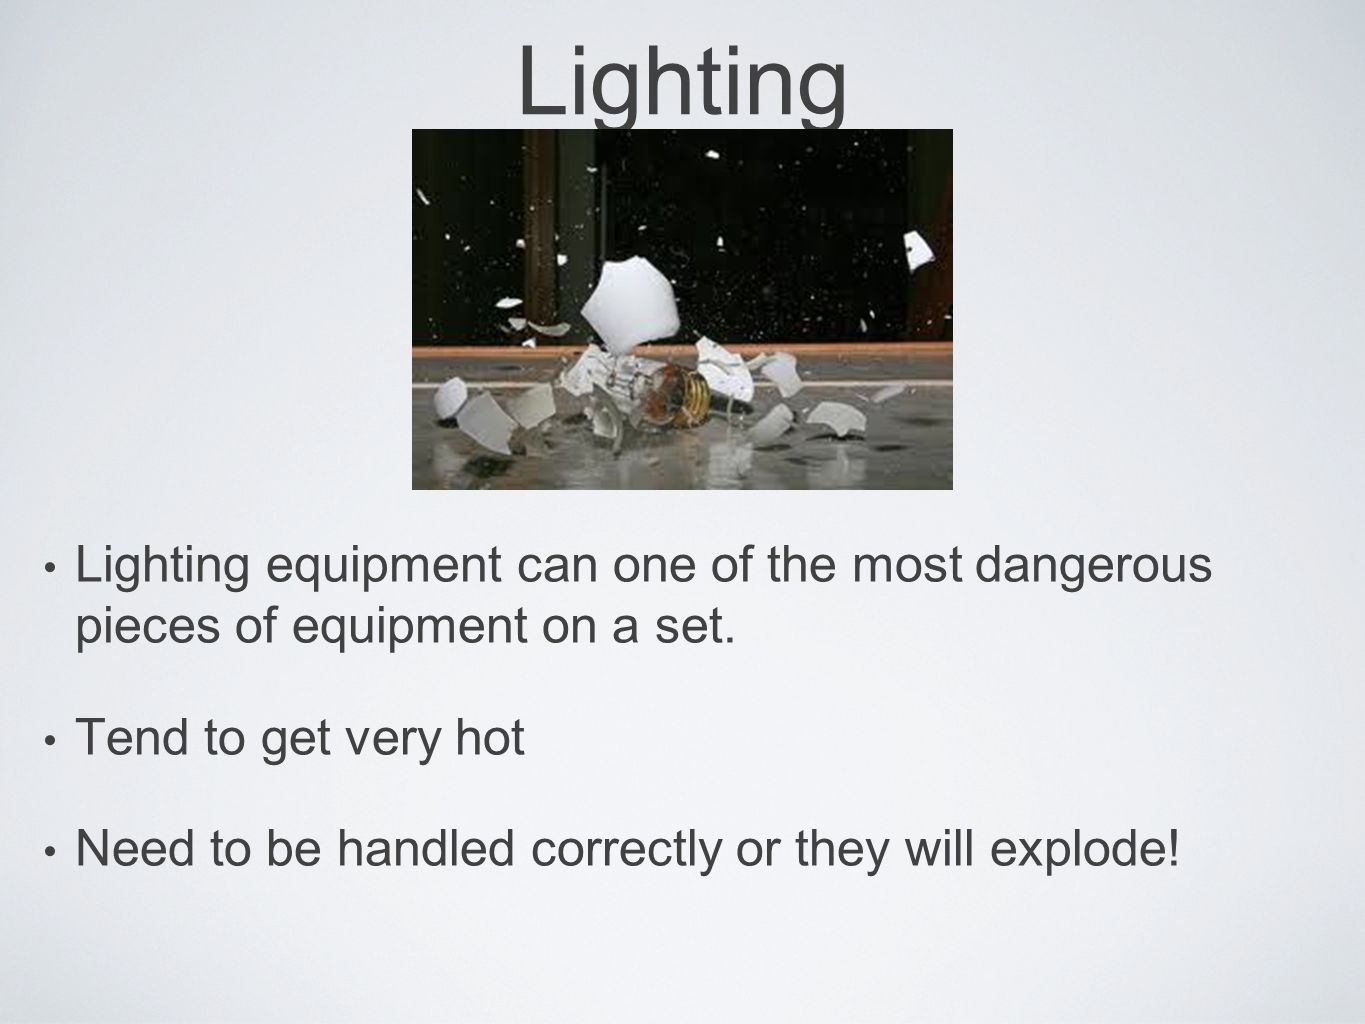 Lighting Lighting equipment can one of the most dangerous pieces of equipment on a set.